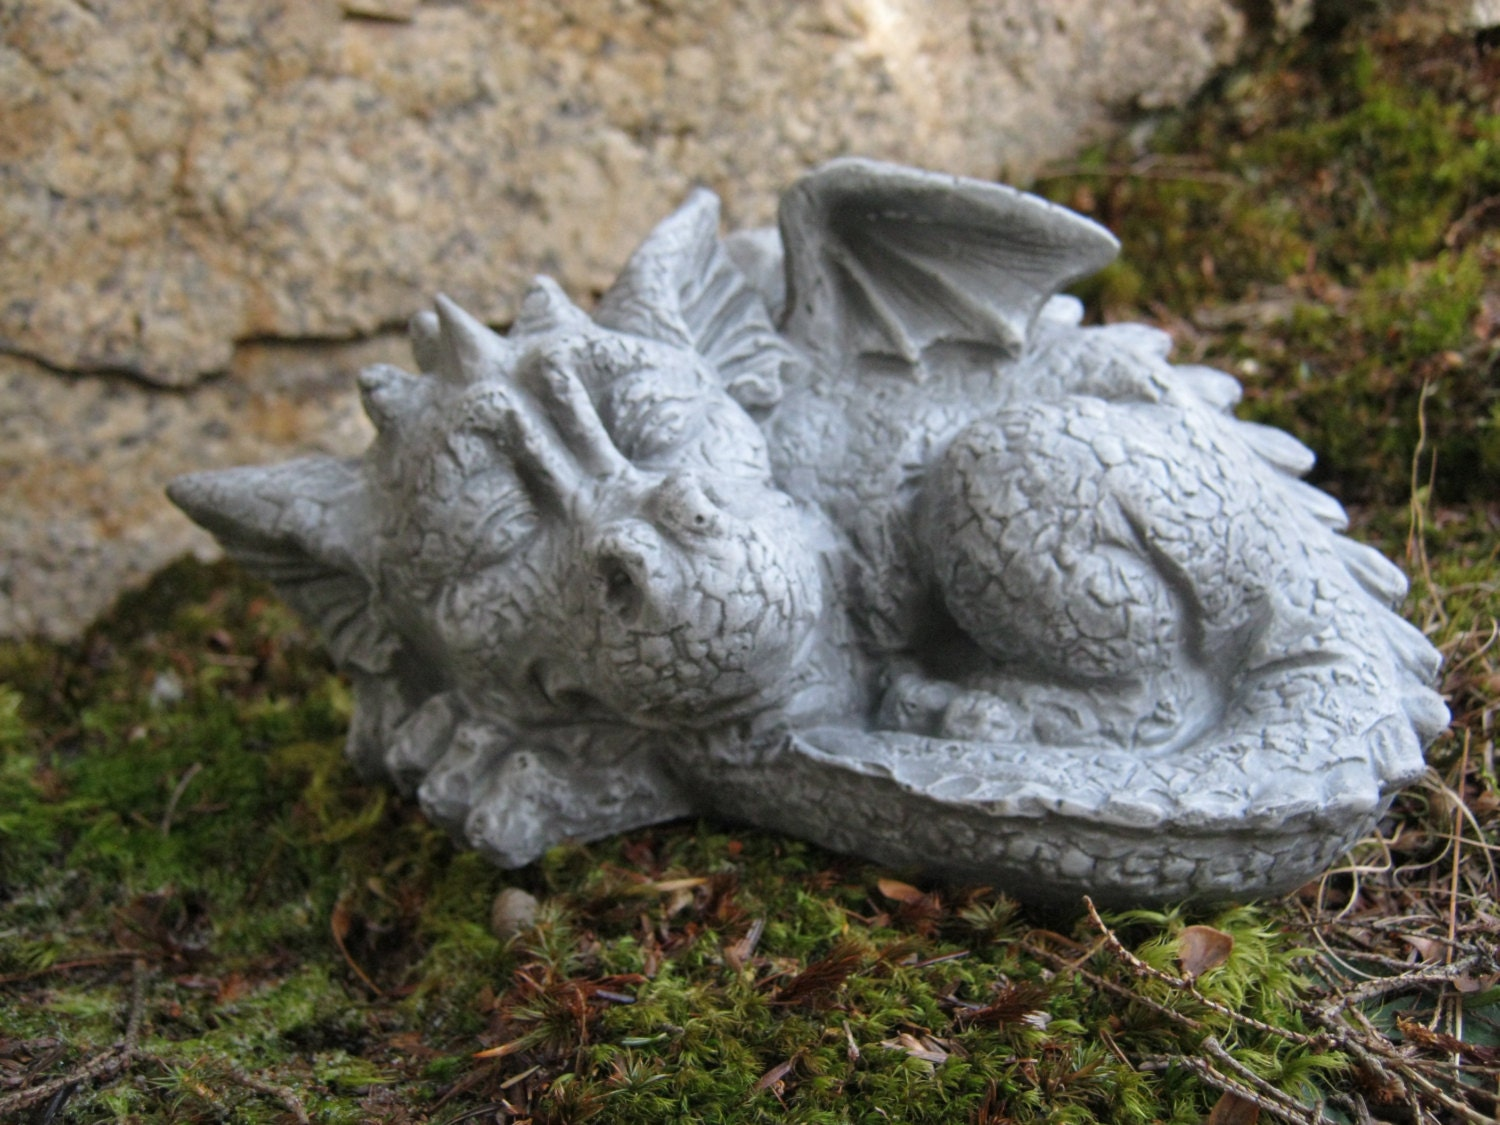 Dragon Statue Concrete Dragon Cement Dragons Garden